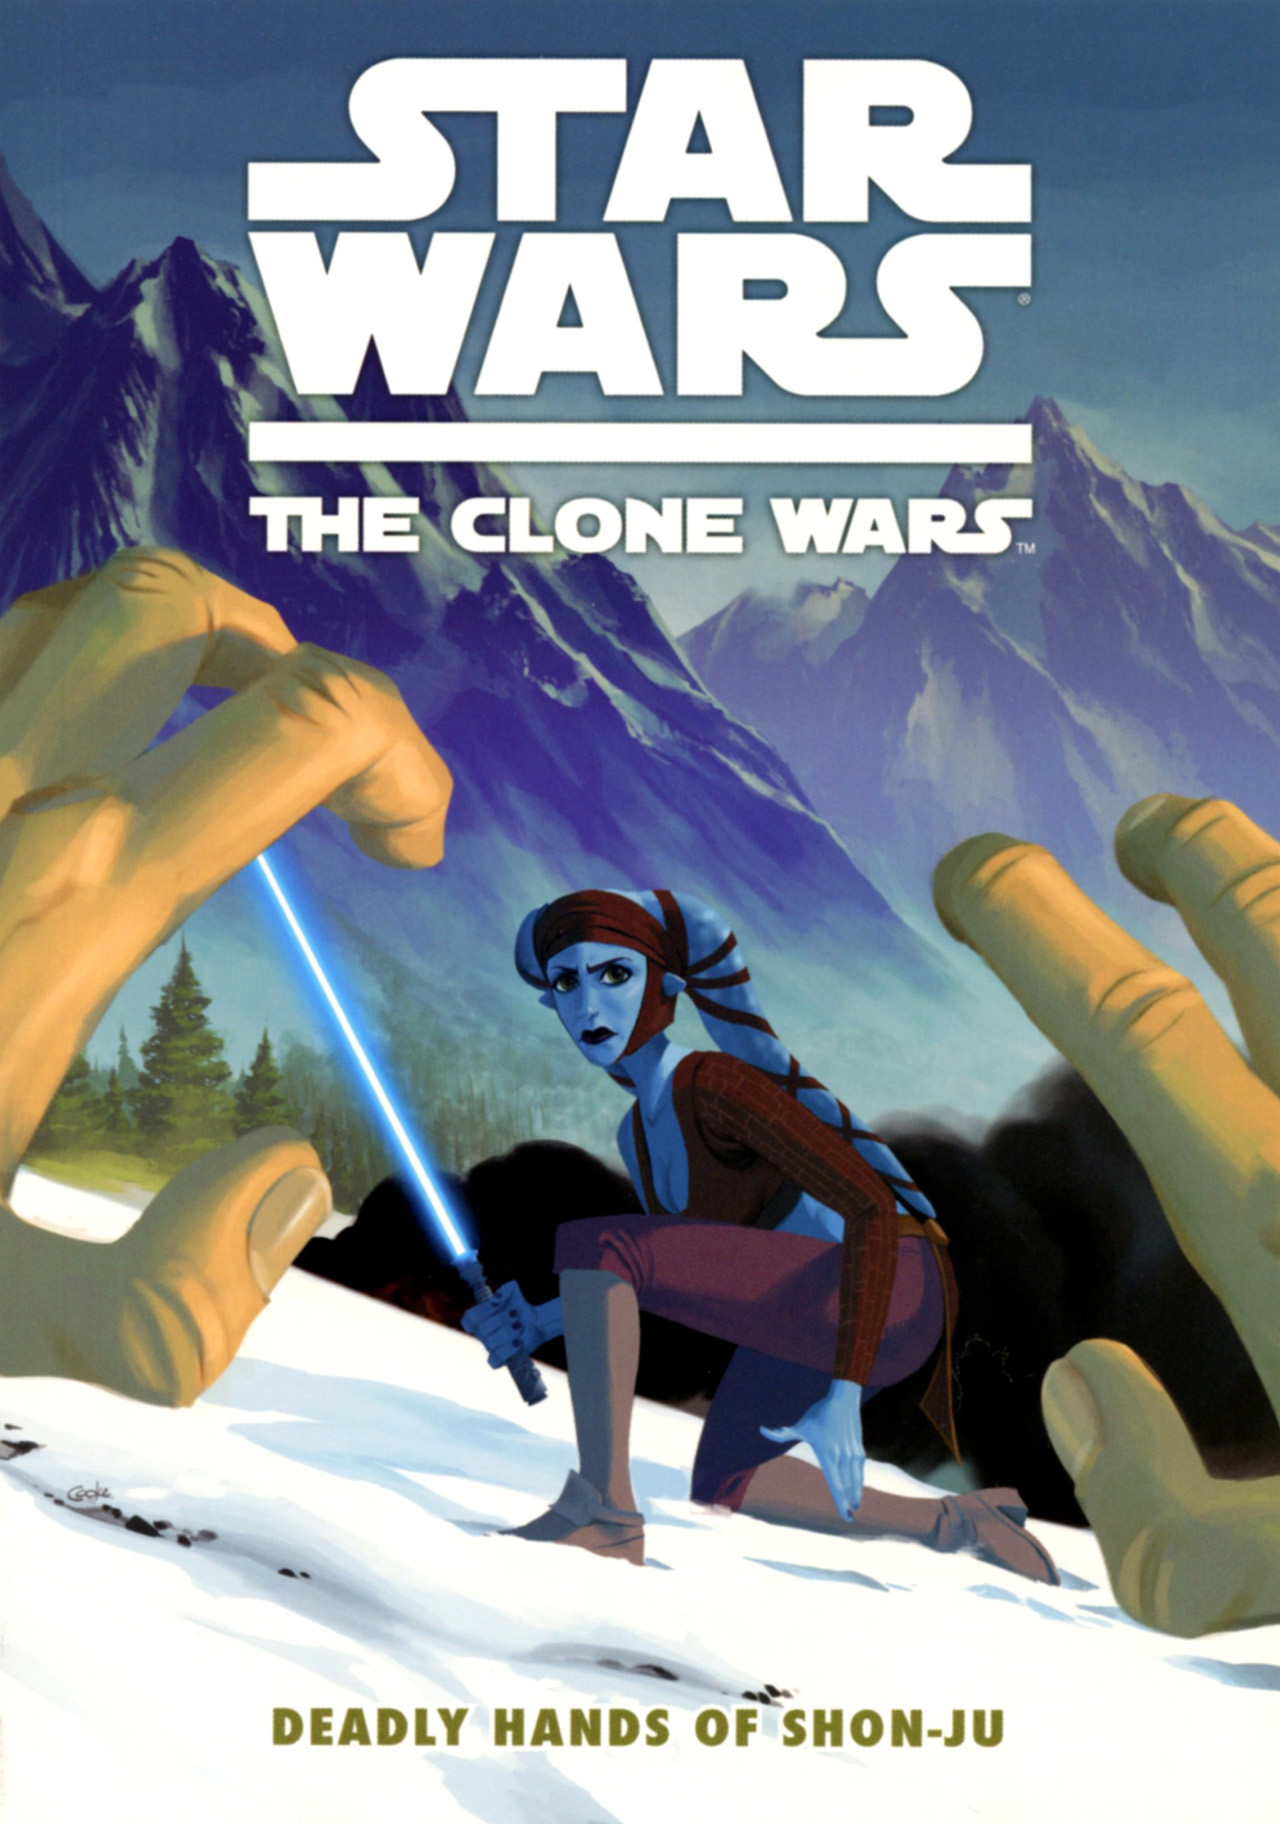 Star Wars: The Clone Wars - Deadly Hands of Shon-Ju Full Page 1